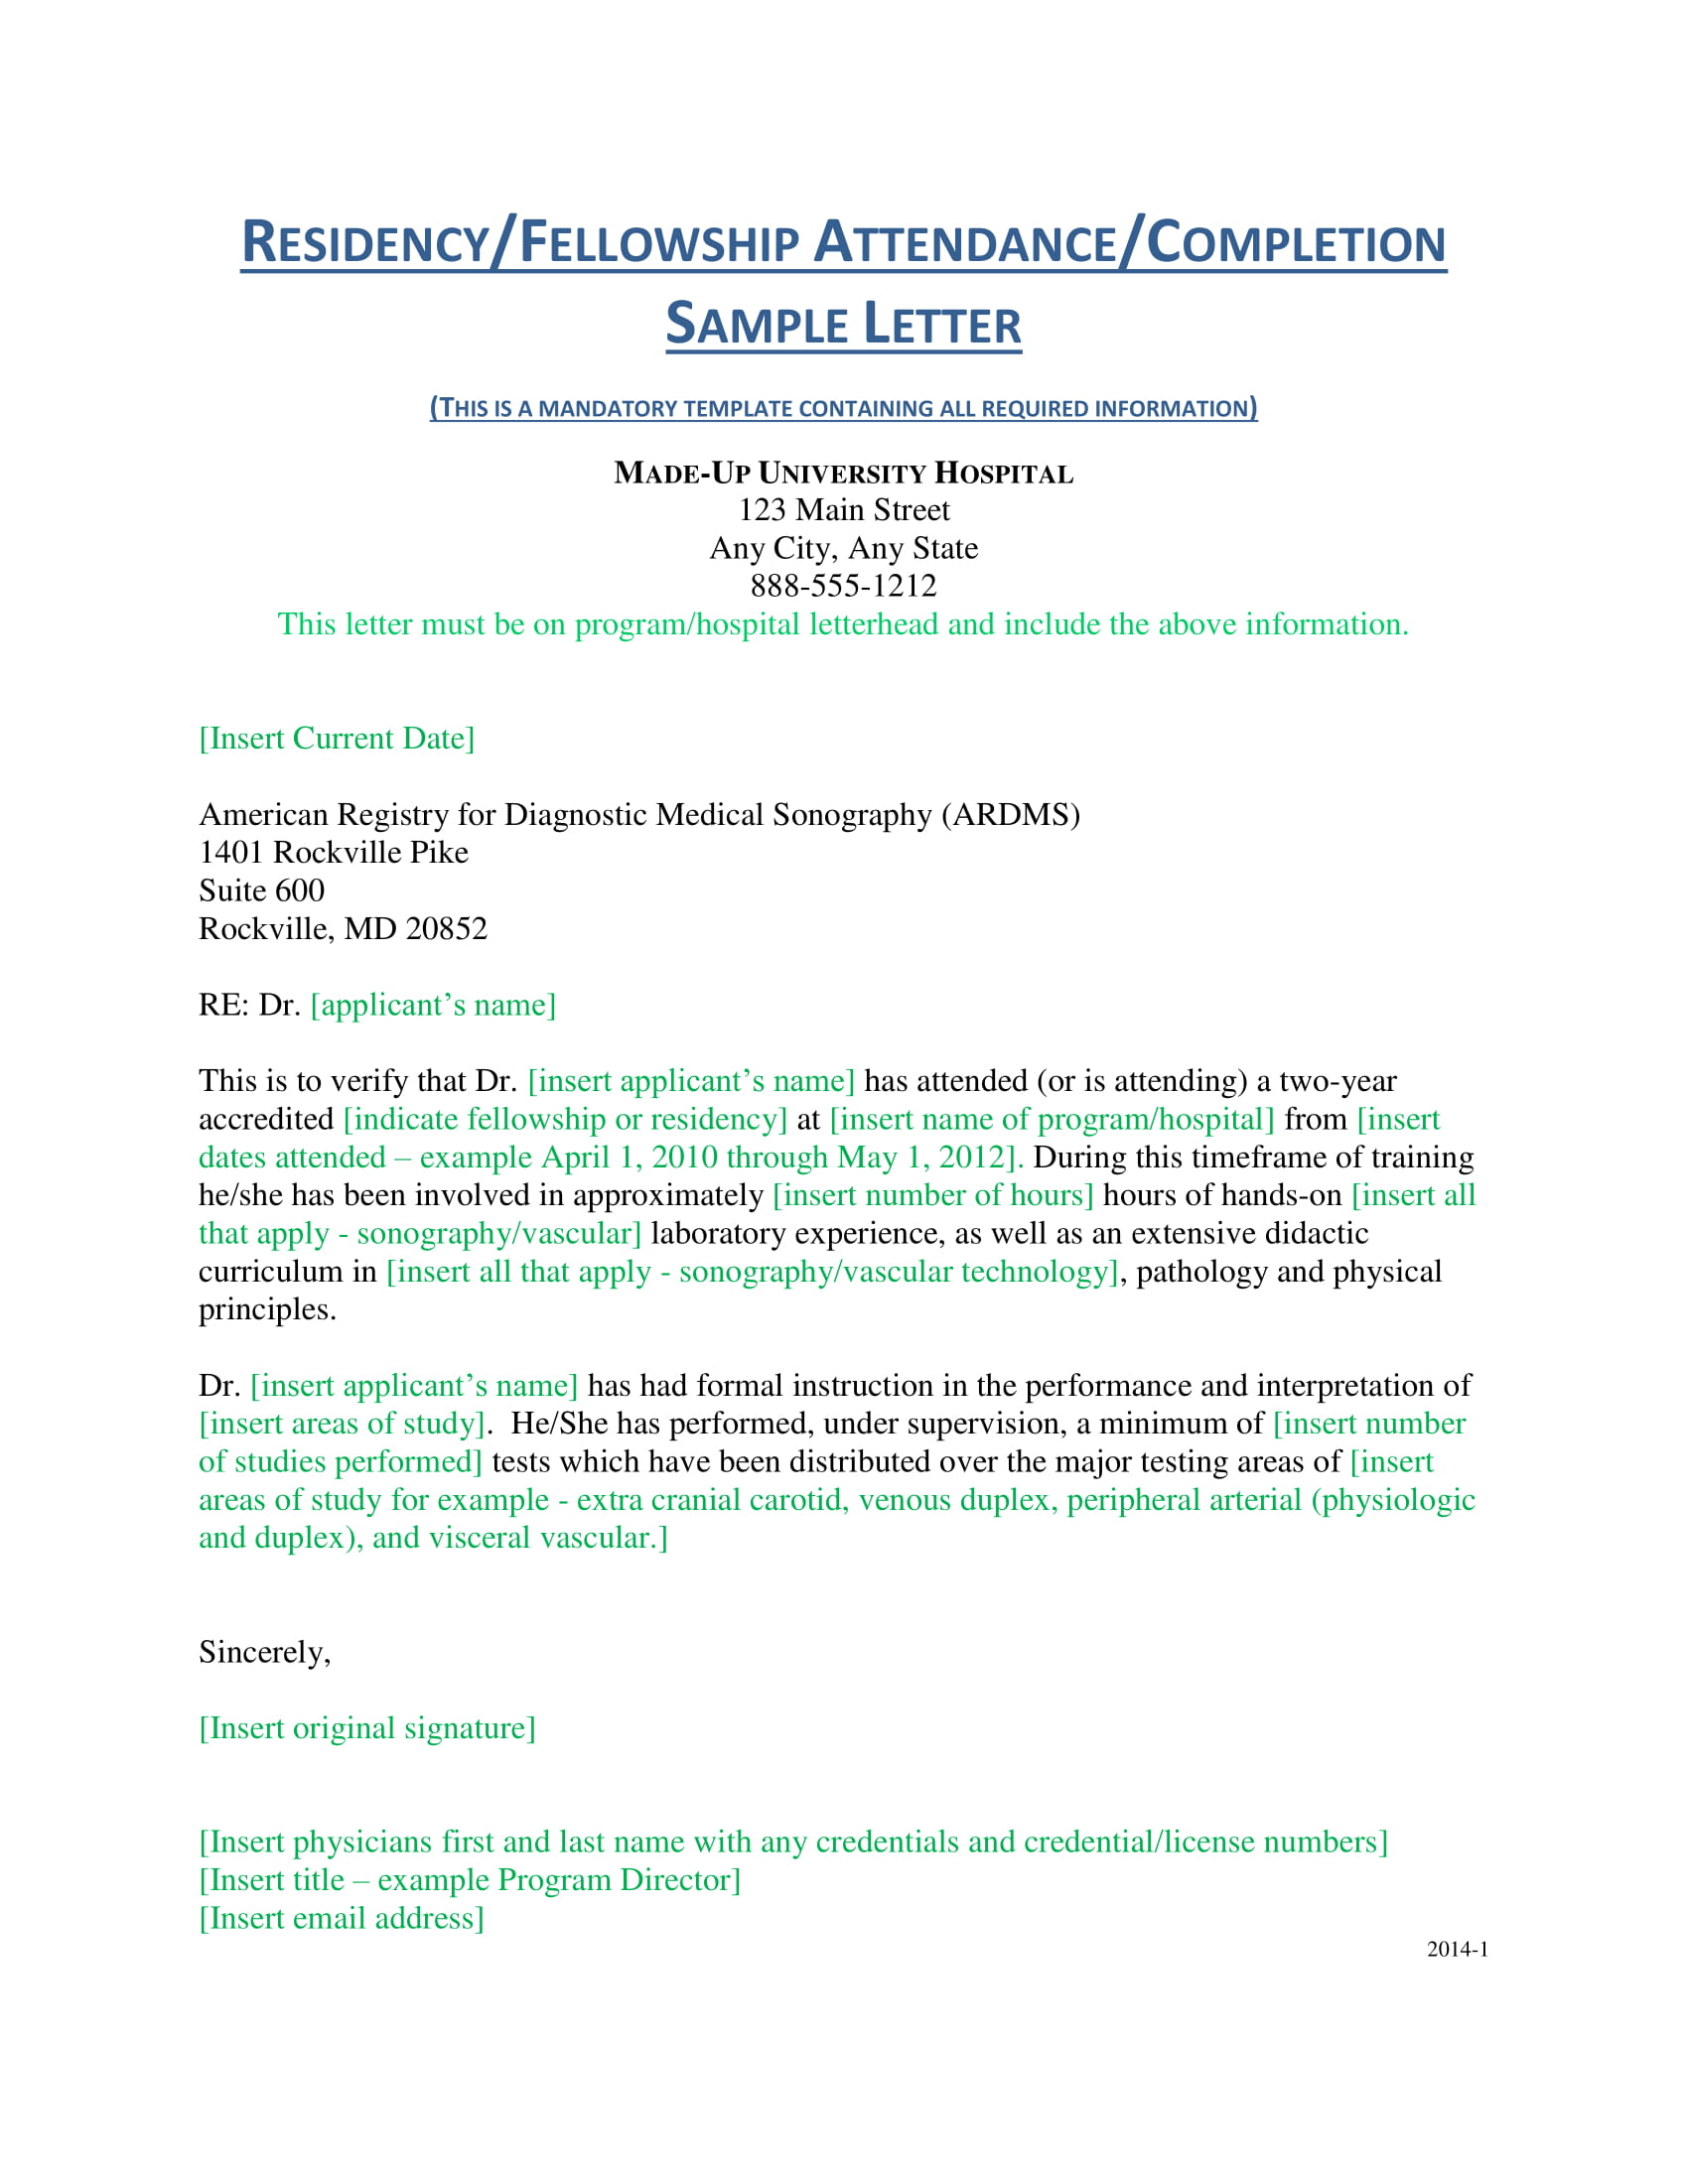 verification of residency fellowship attendance completion letter